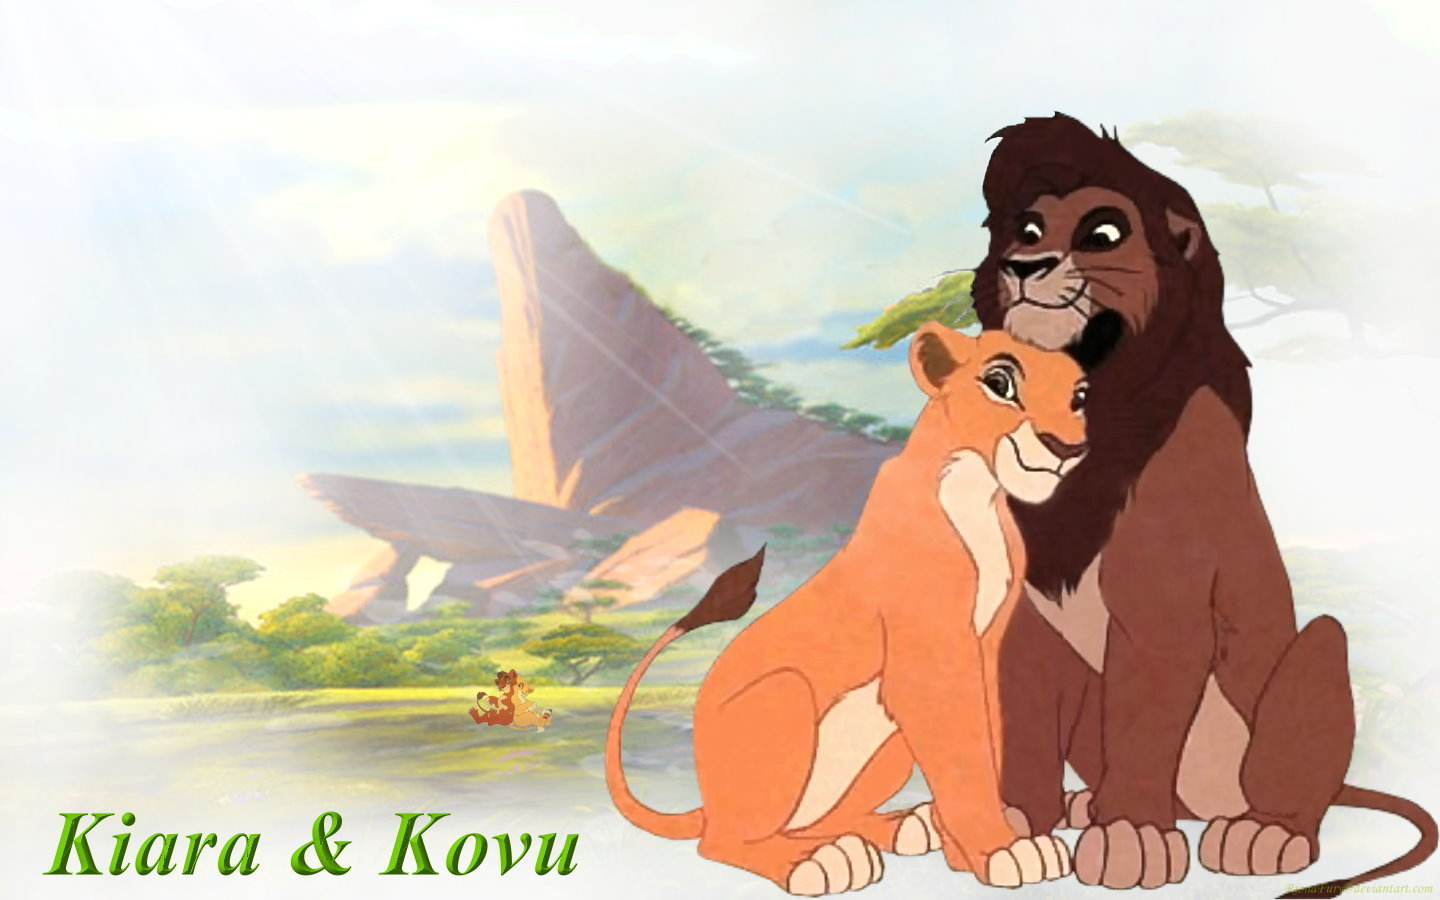 Kiara and Kovu